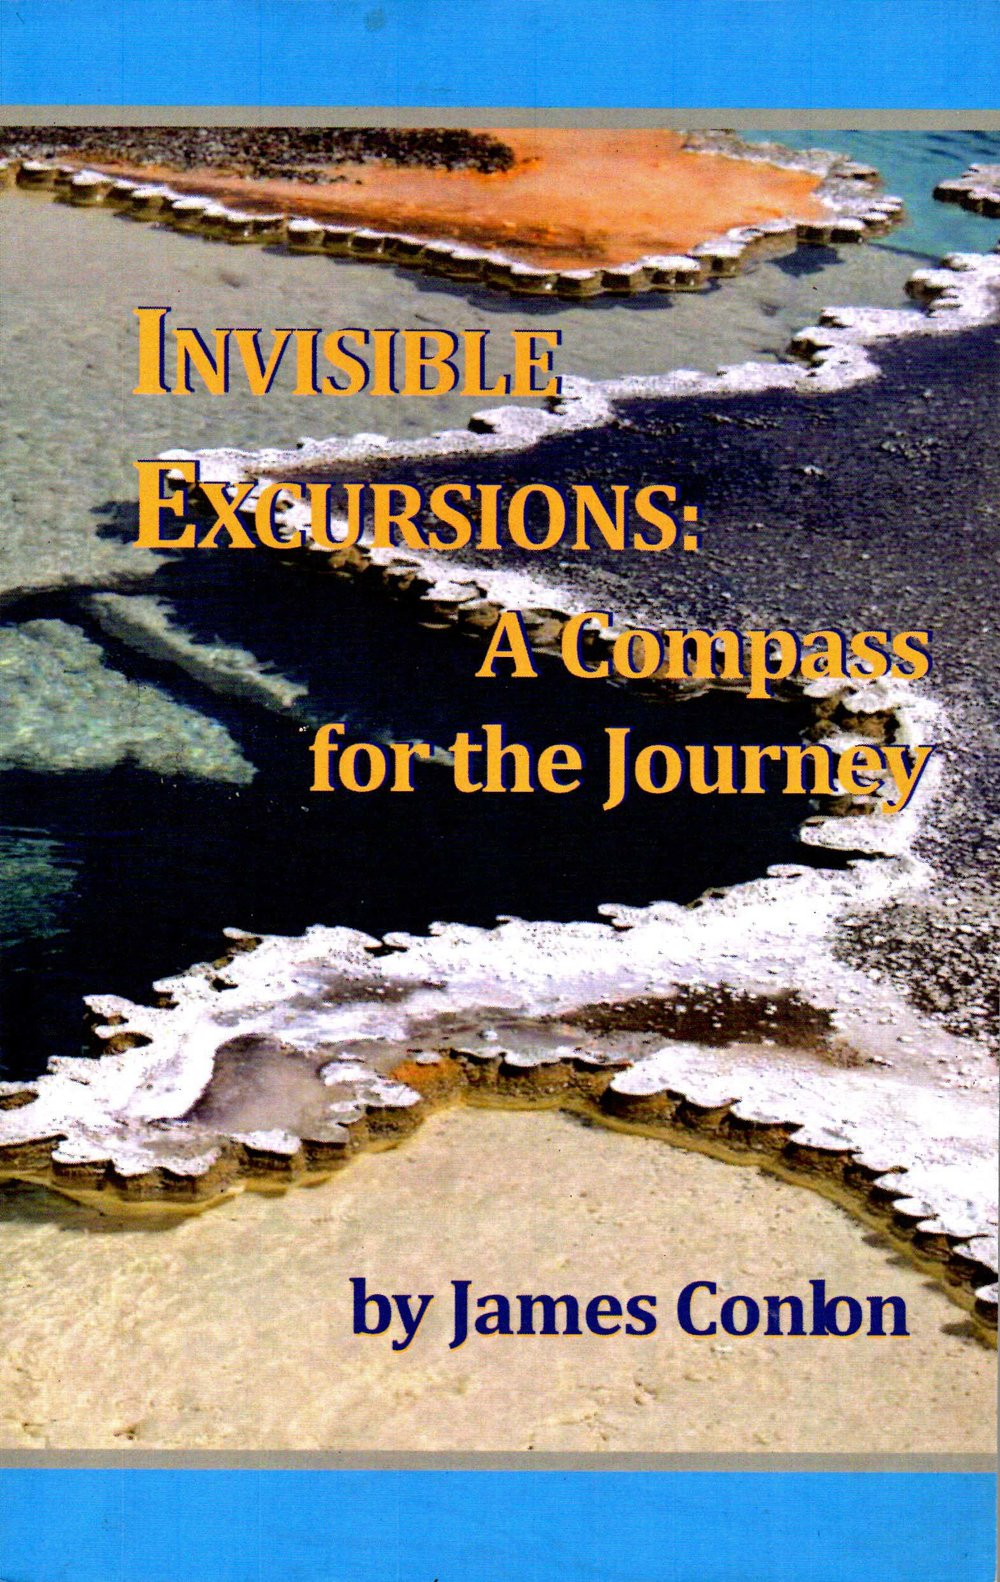 Invsible Excursions.jpg